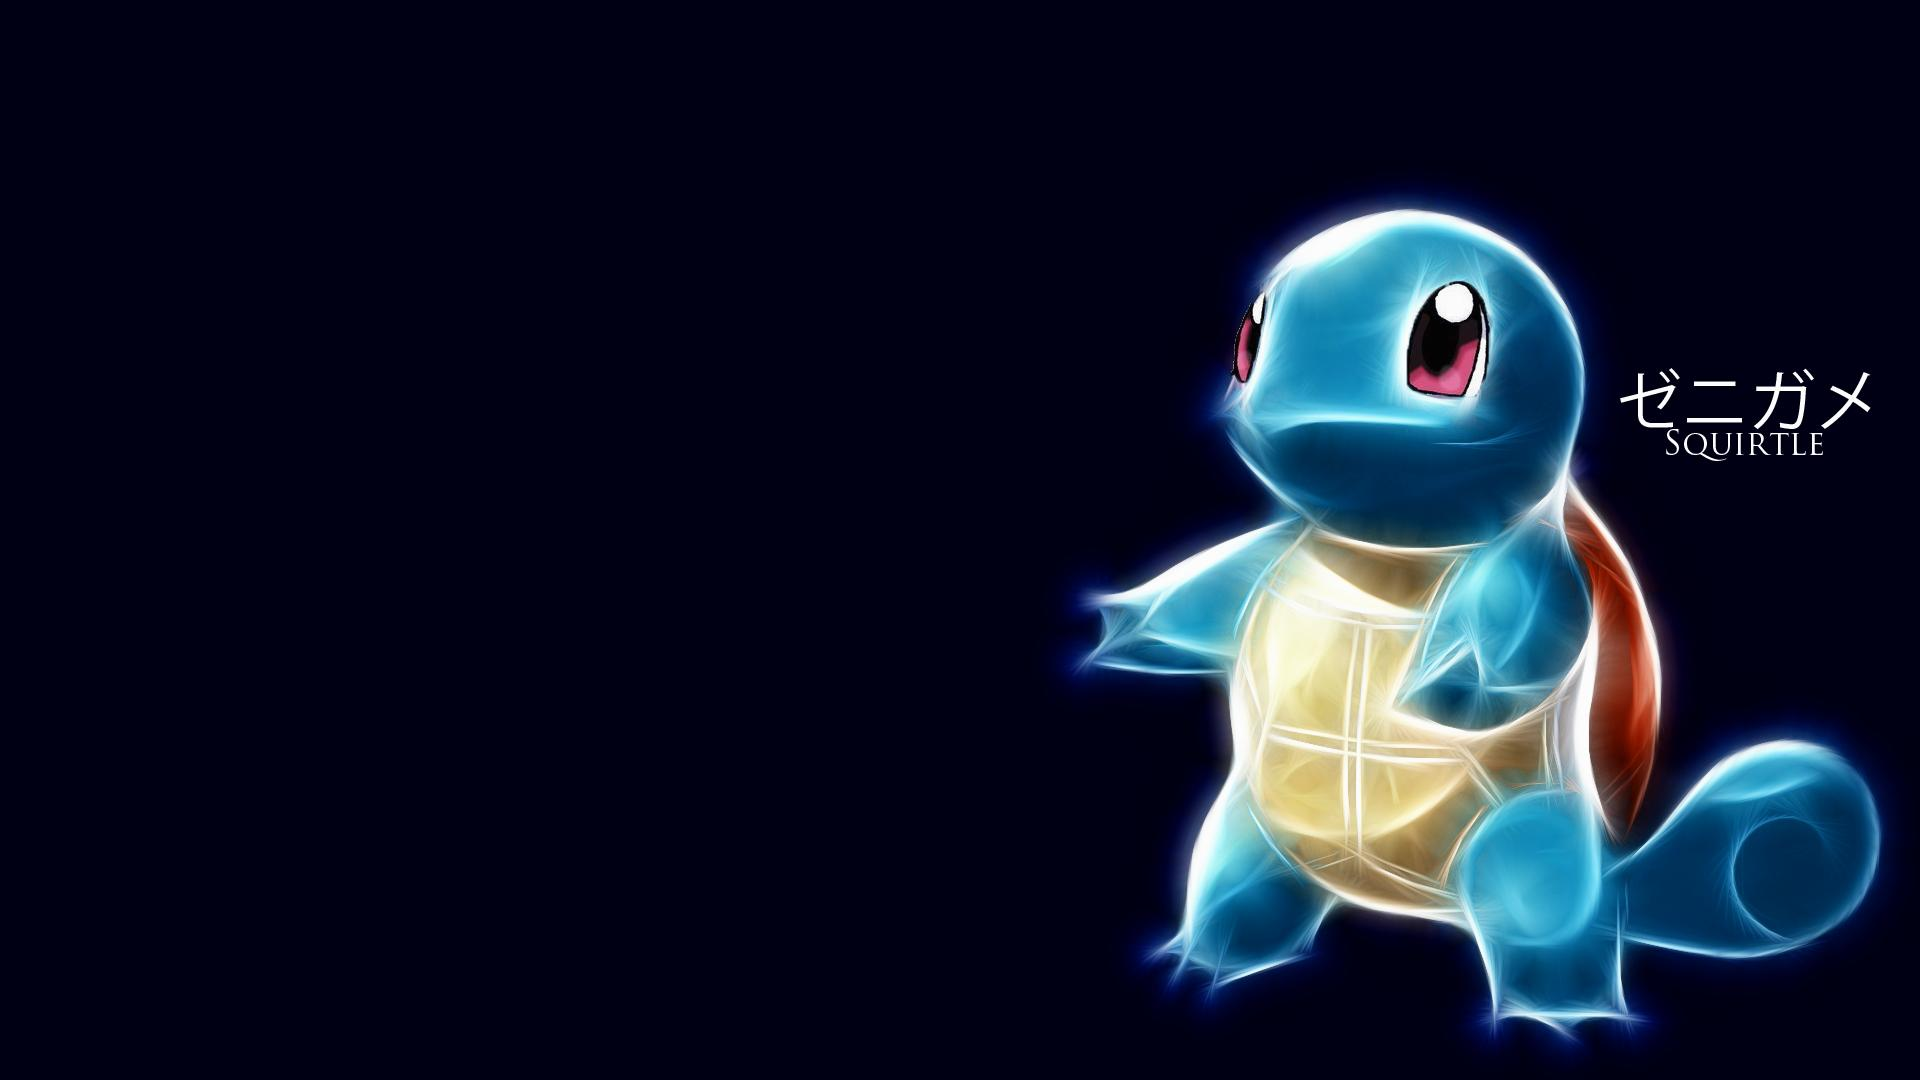 Pokémon images Squirtle HD wallpaper and background photos  1920x1080